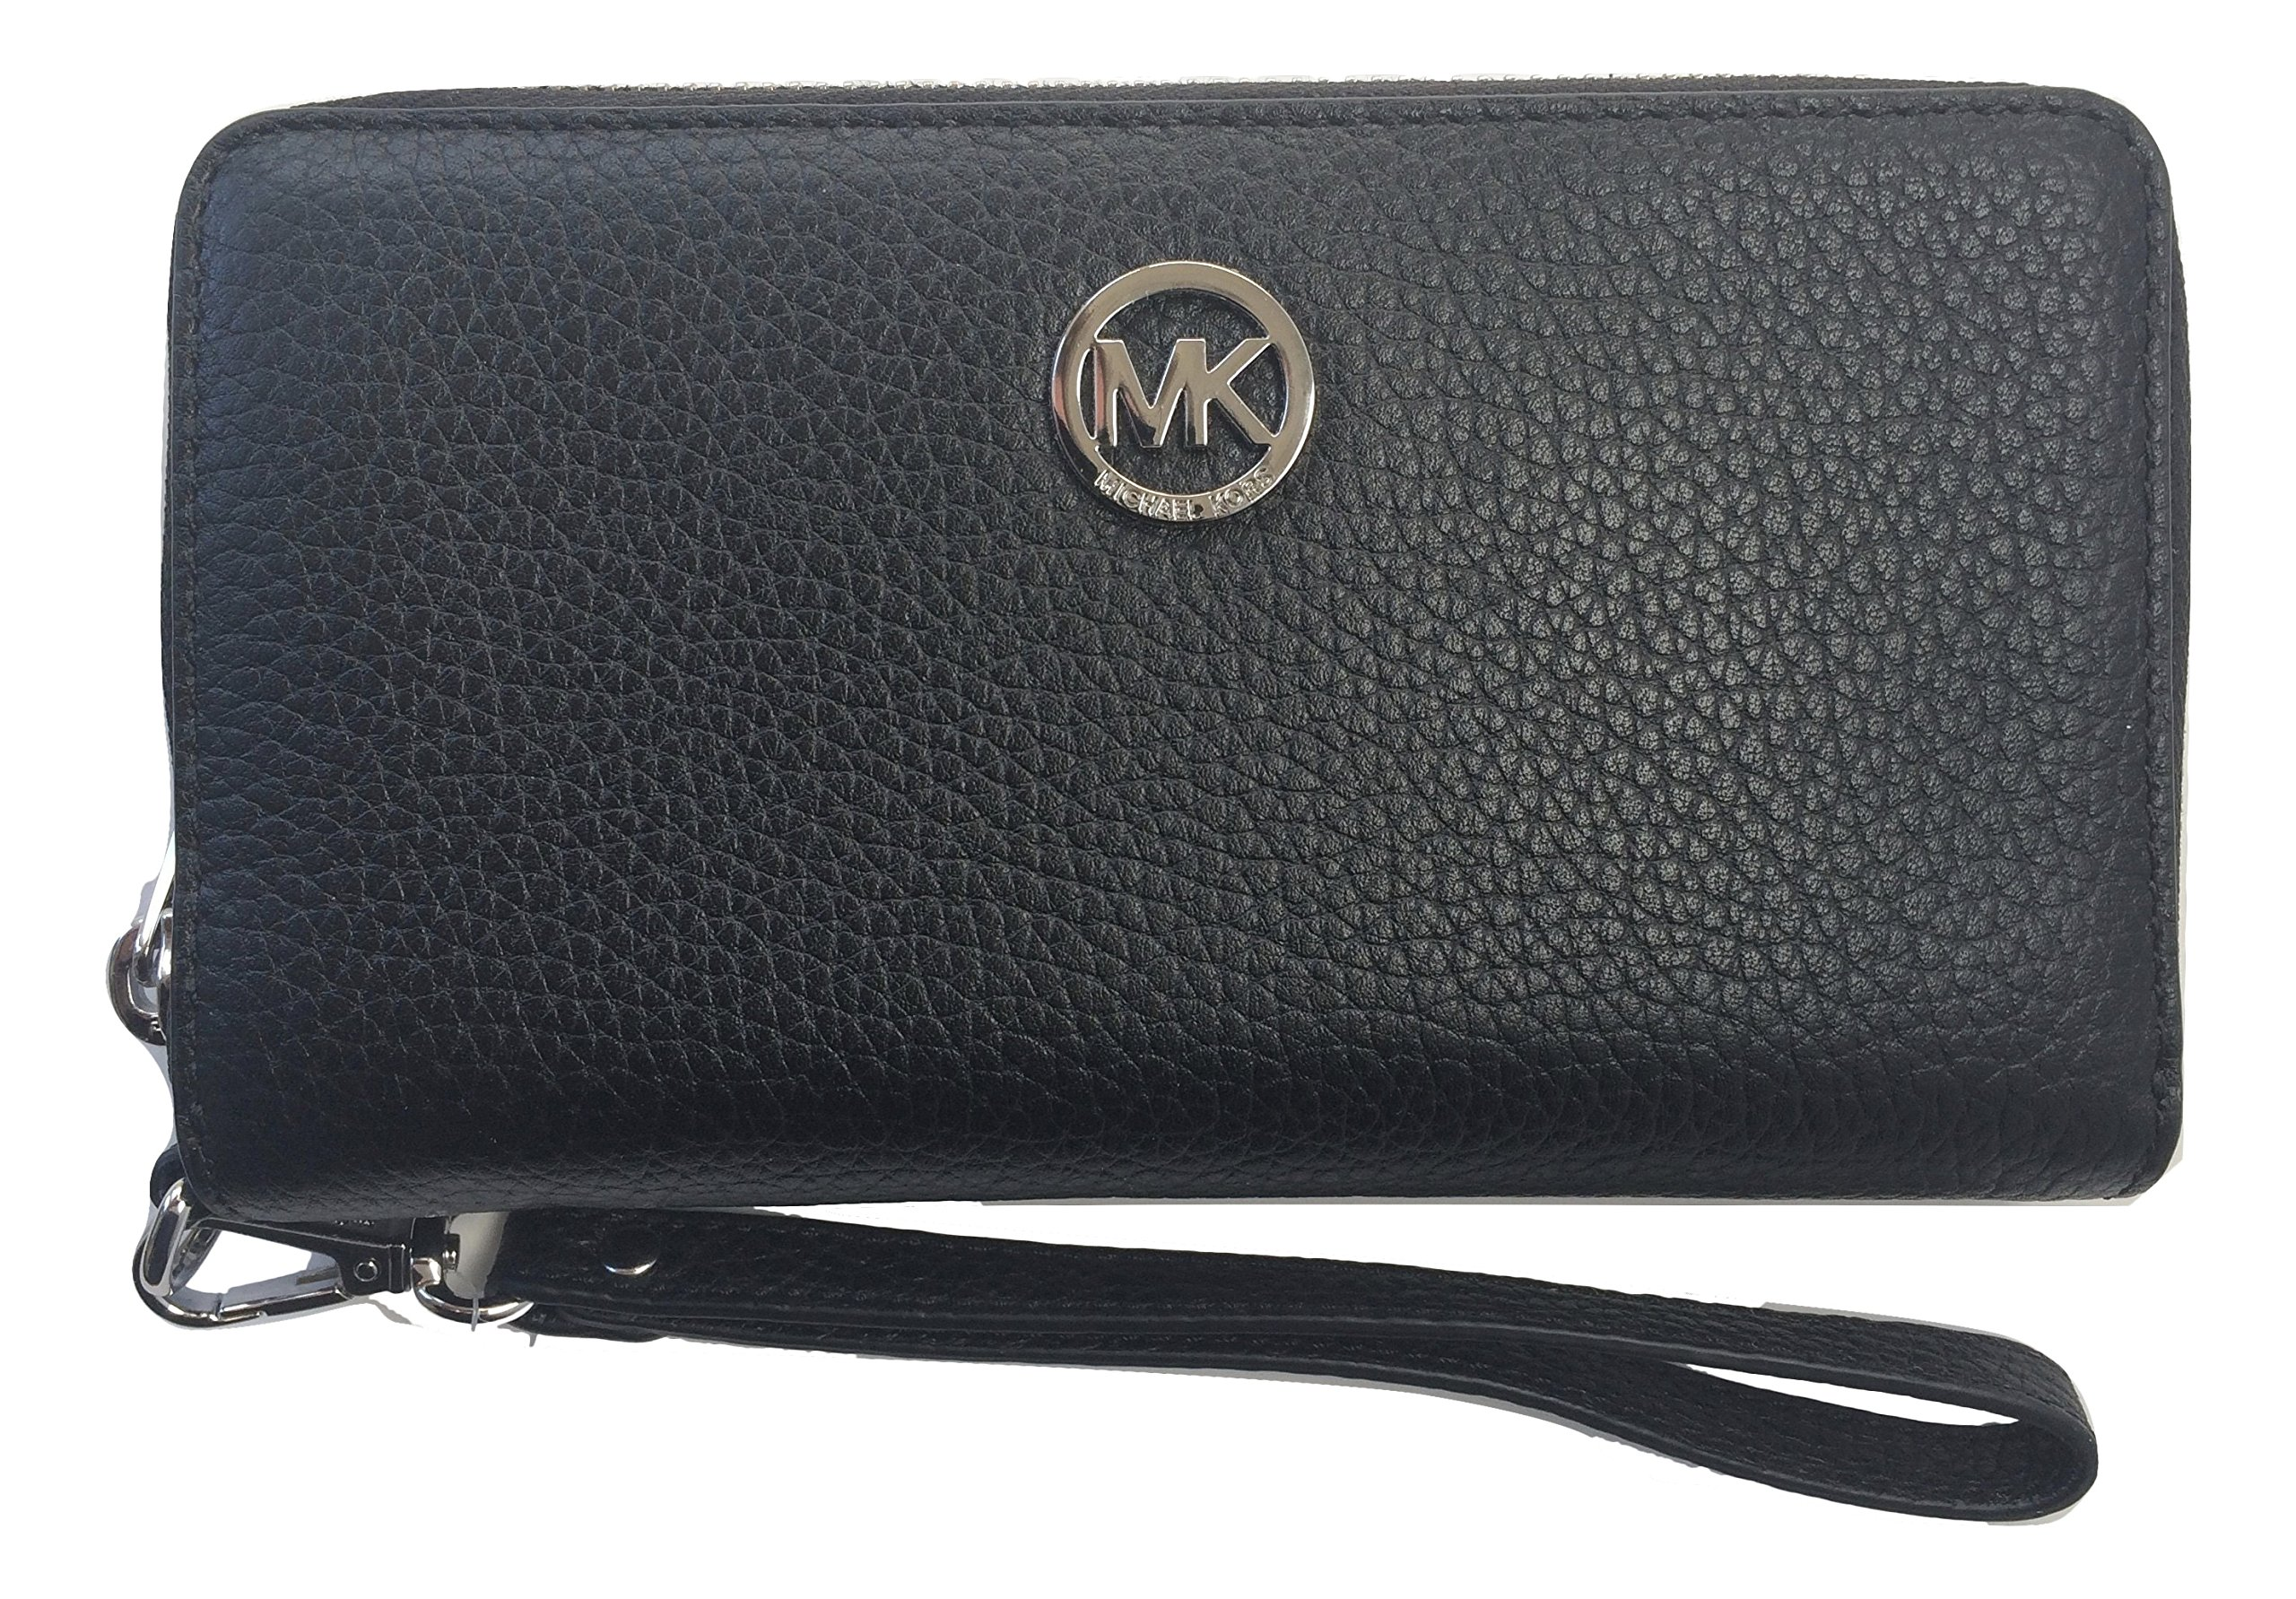 Michael Kors Fulton Large Flat Multifunction Leather Phone Case (Black with Silver Hardware)